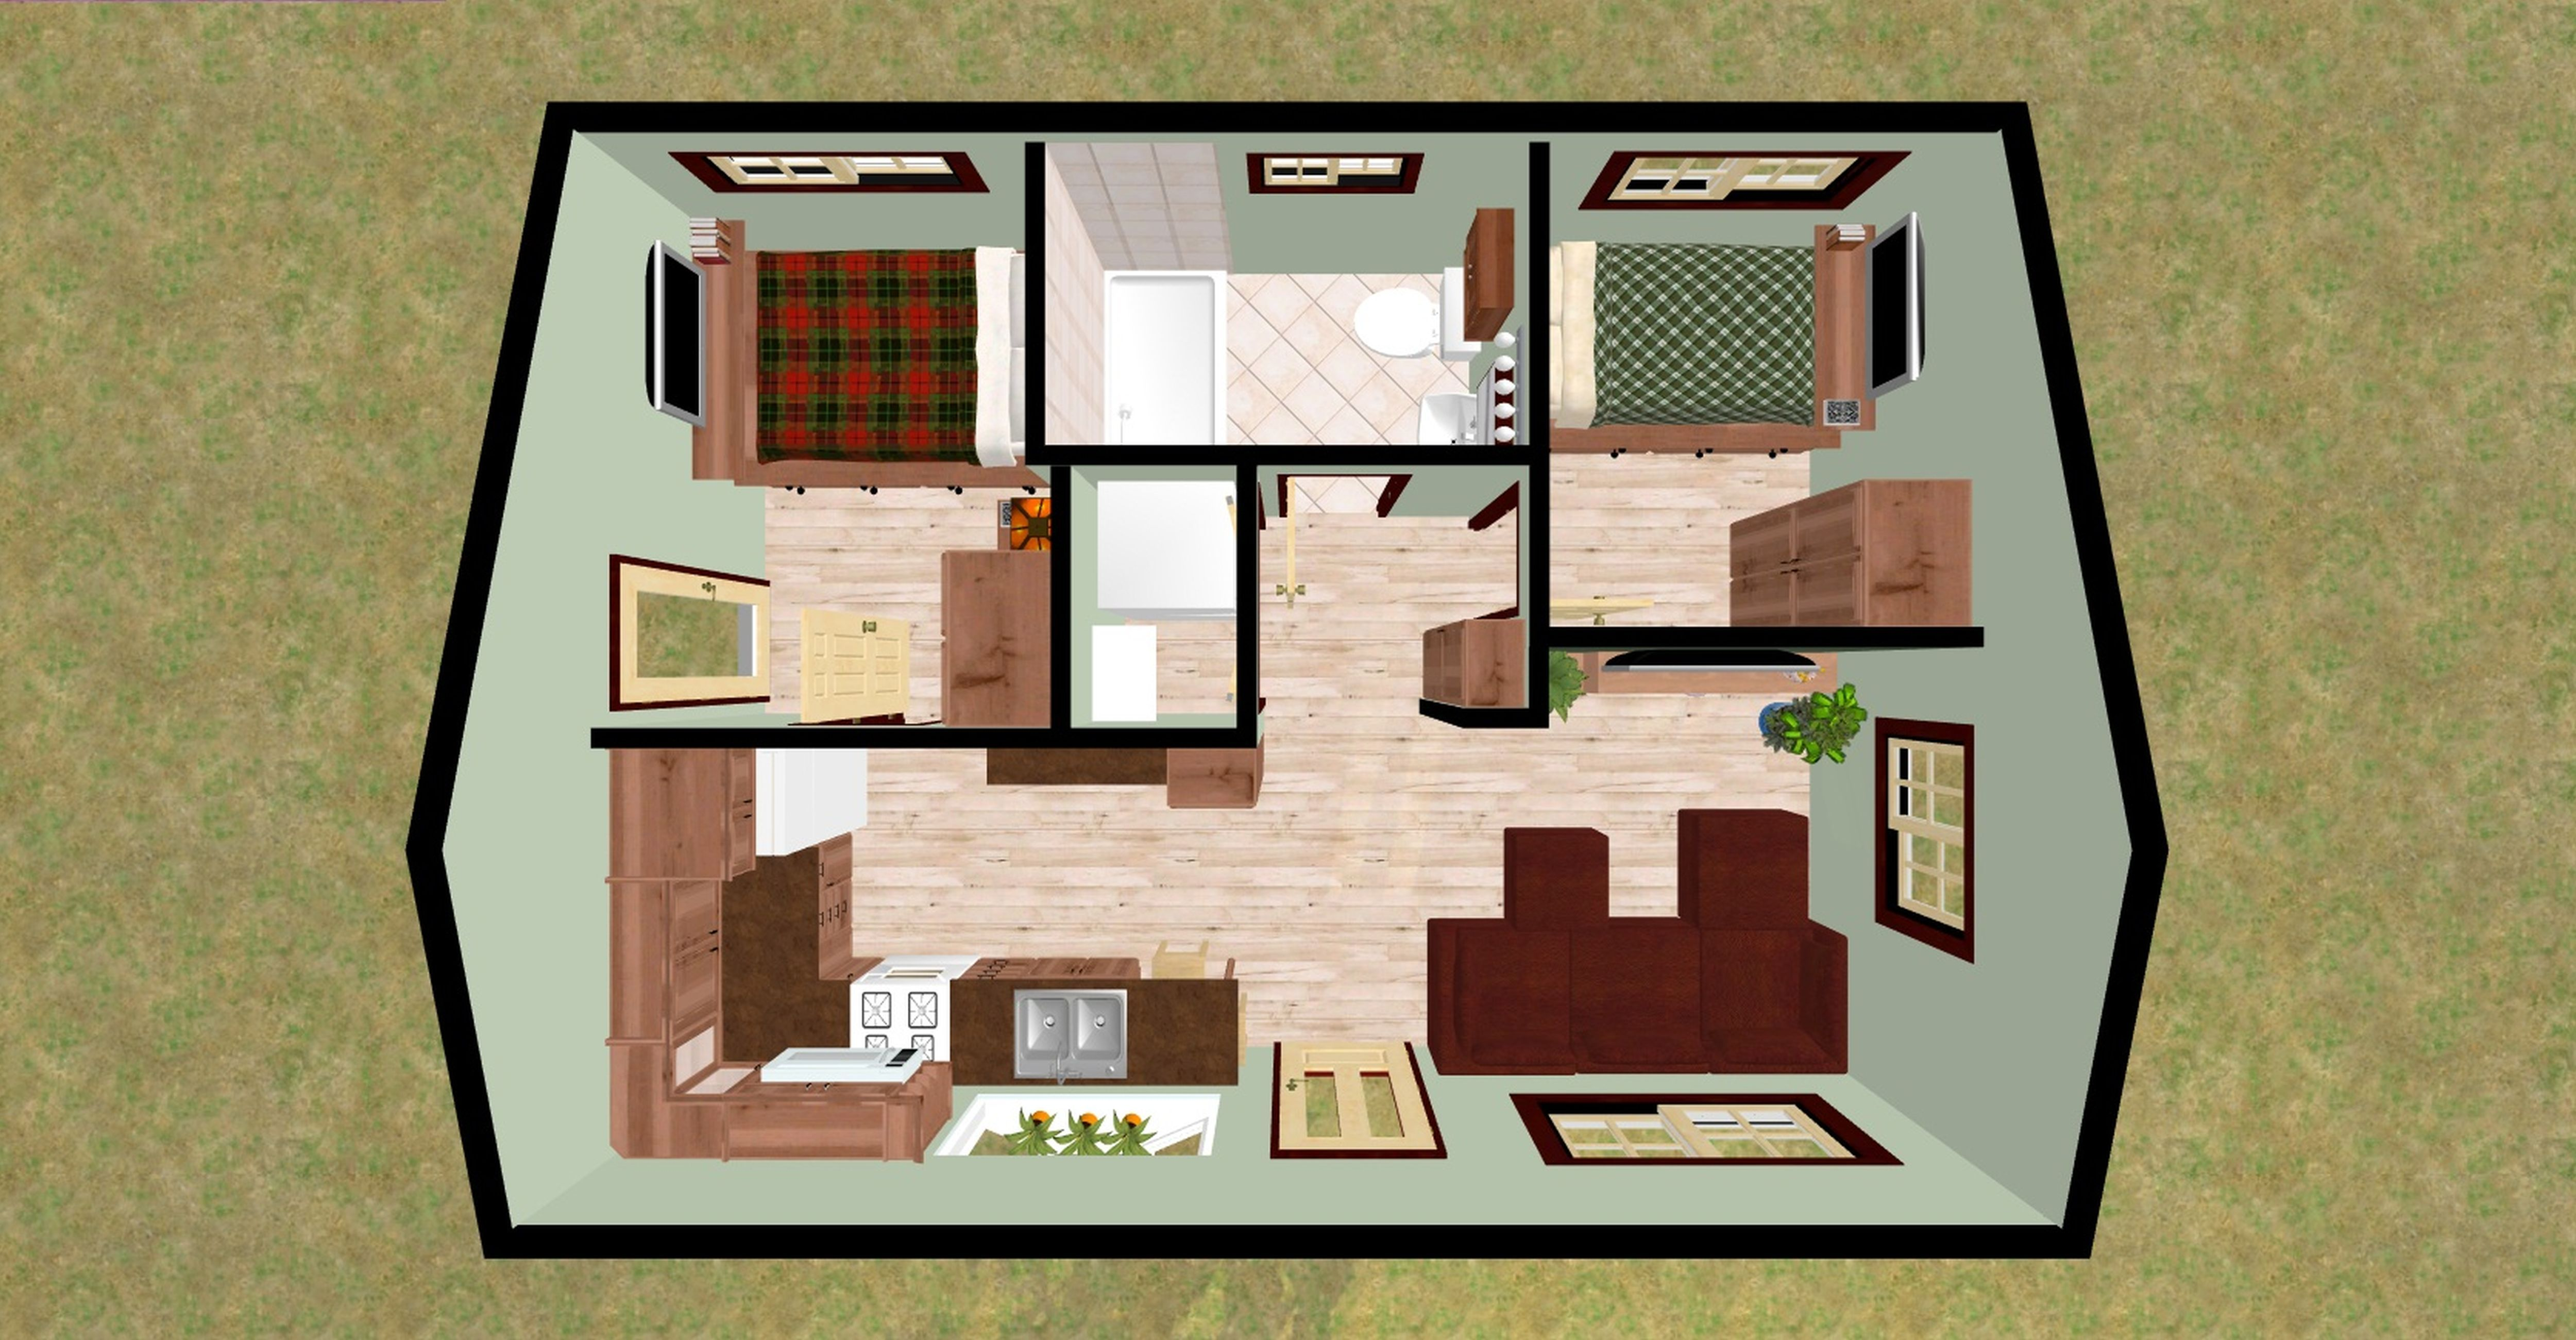 Join The Discussion On This Adorable Futuristic Houses Decozt Inspiring Home Interior Design Id Home Design Floor Plans Tiny House Layout Tropical House Design